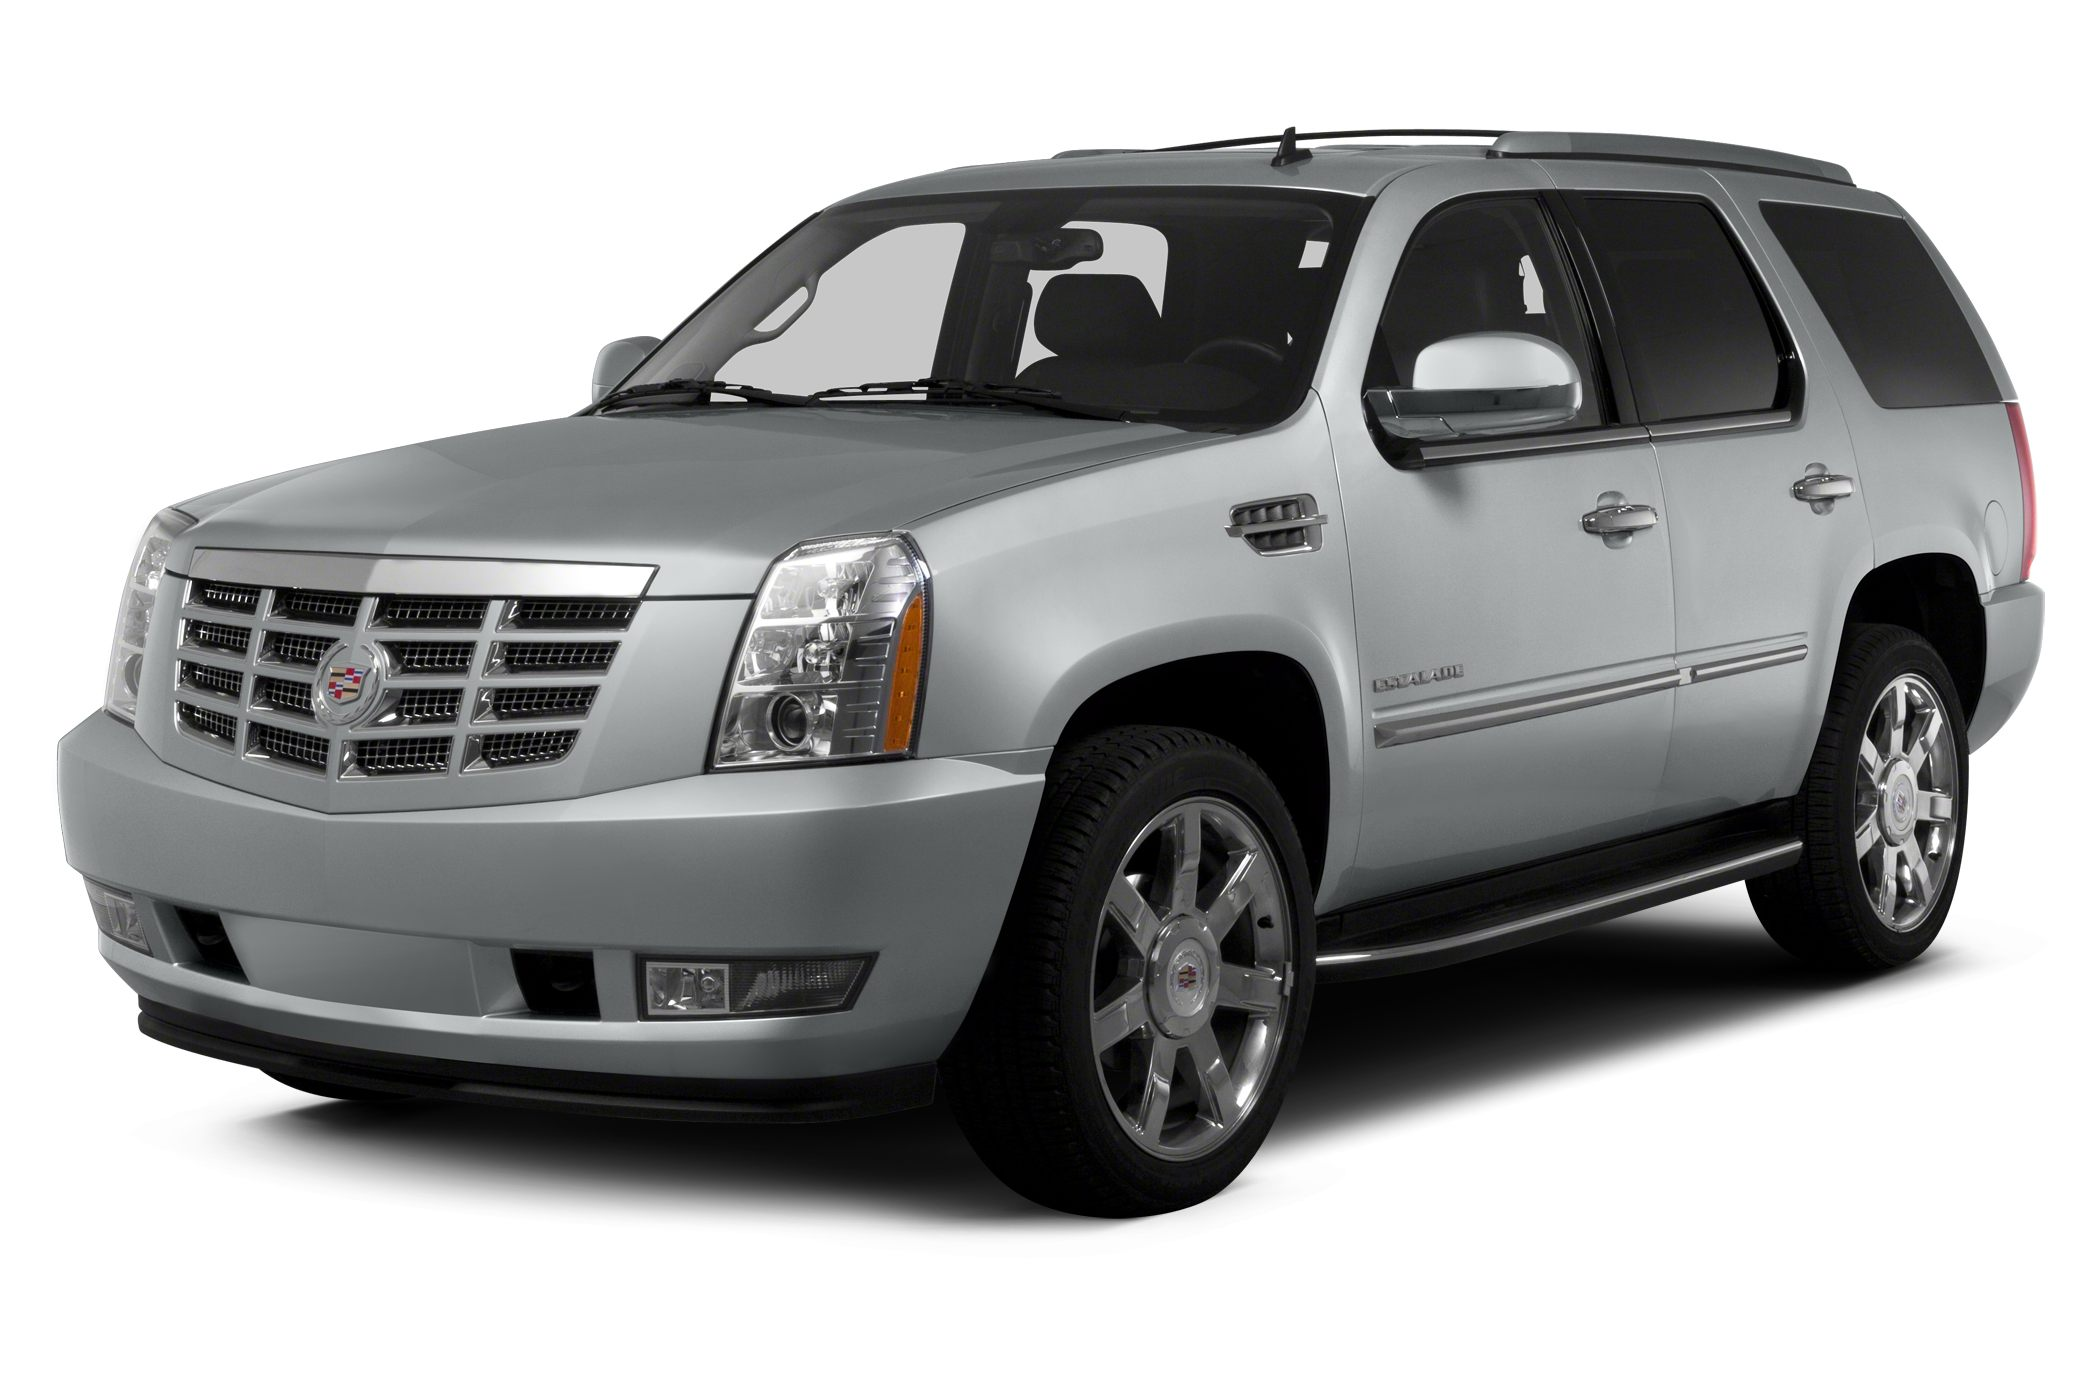 2013 Cadillac Escalade Luxury SUV for sale in New Iberia for $49,588 with 26,395 miles